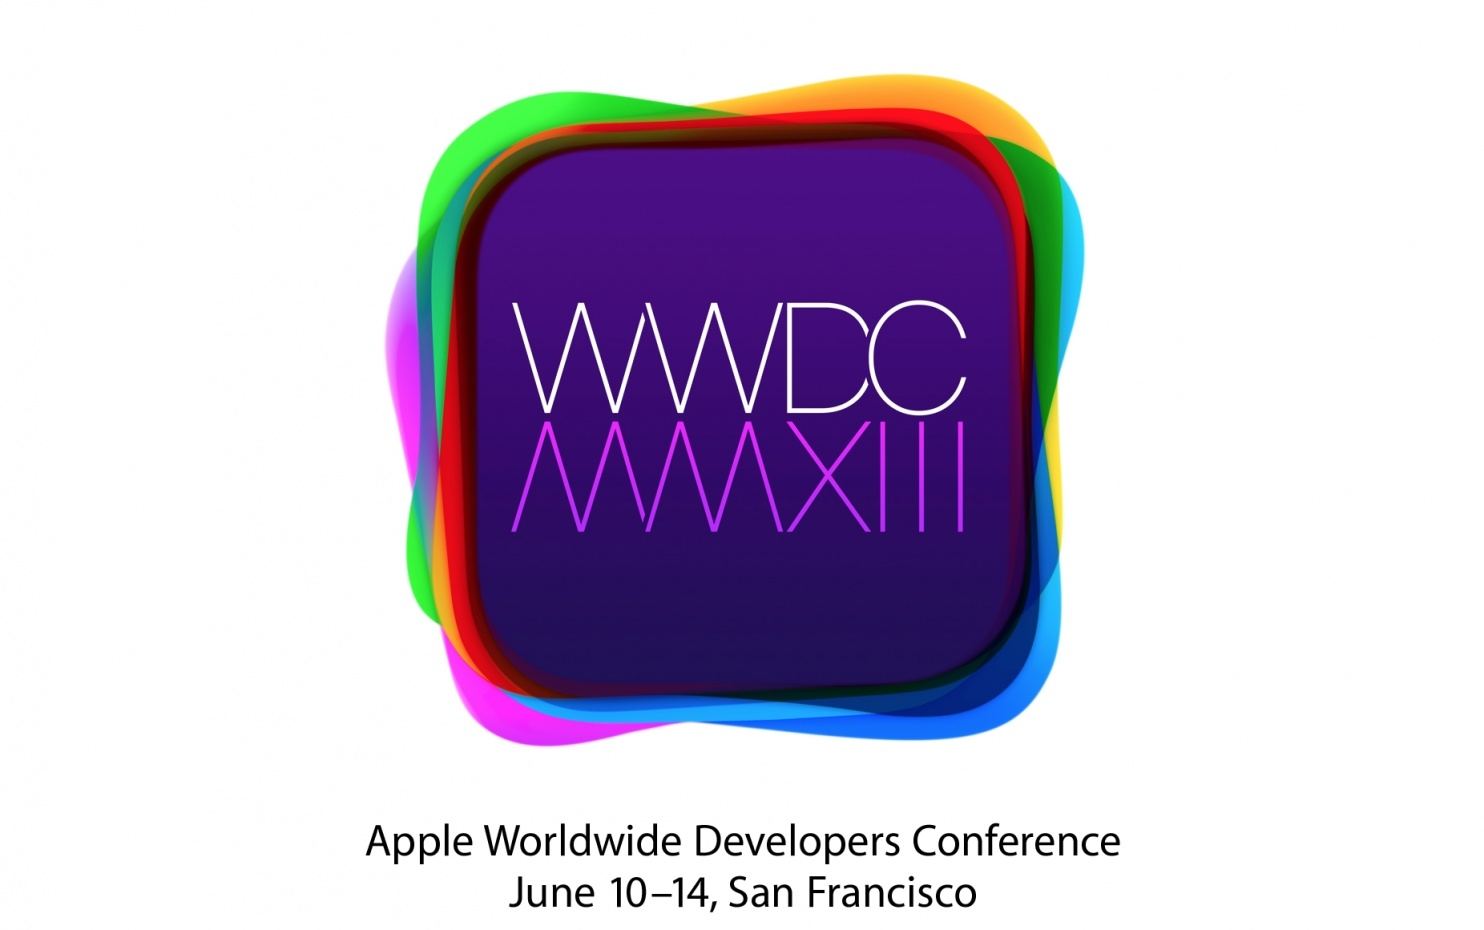 54322d1383691419-wwdc-2013-june-10-14-san-francisco-screen-shot-2013-04-24-8-40-22-am